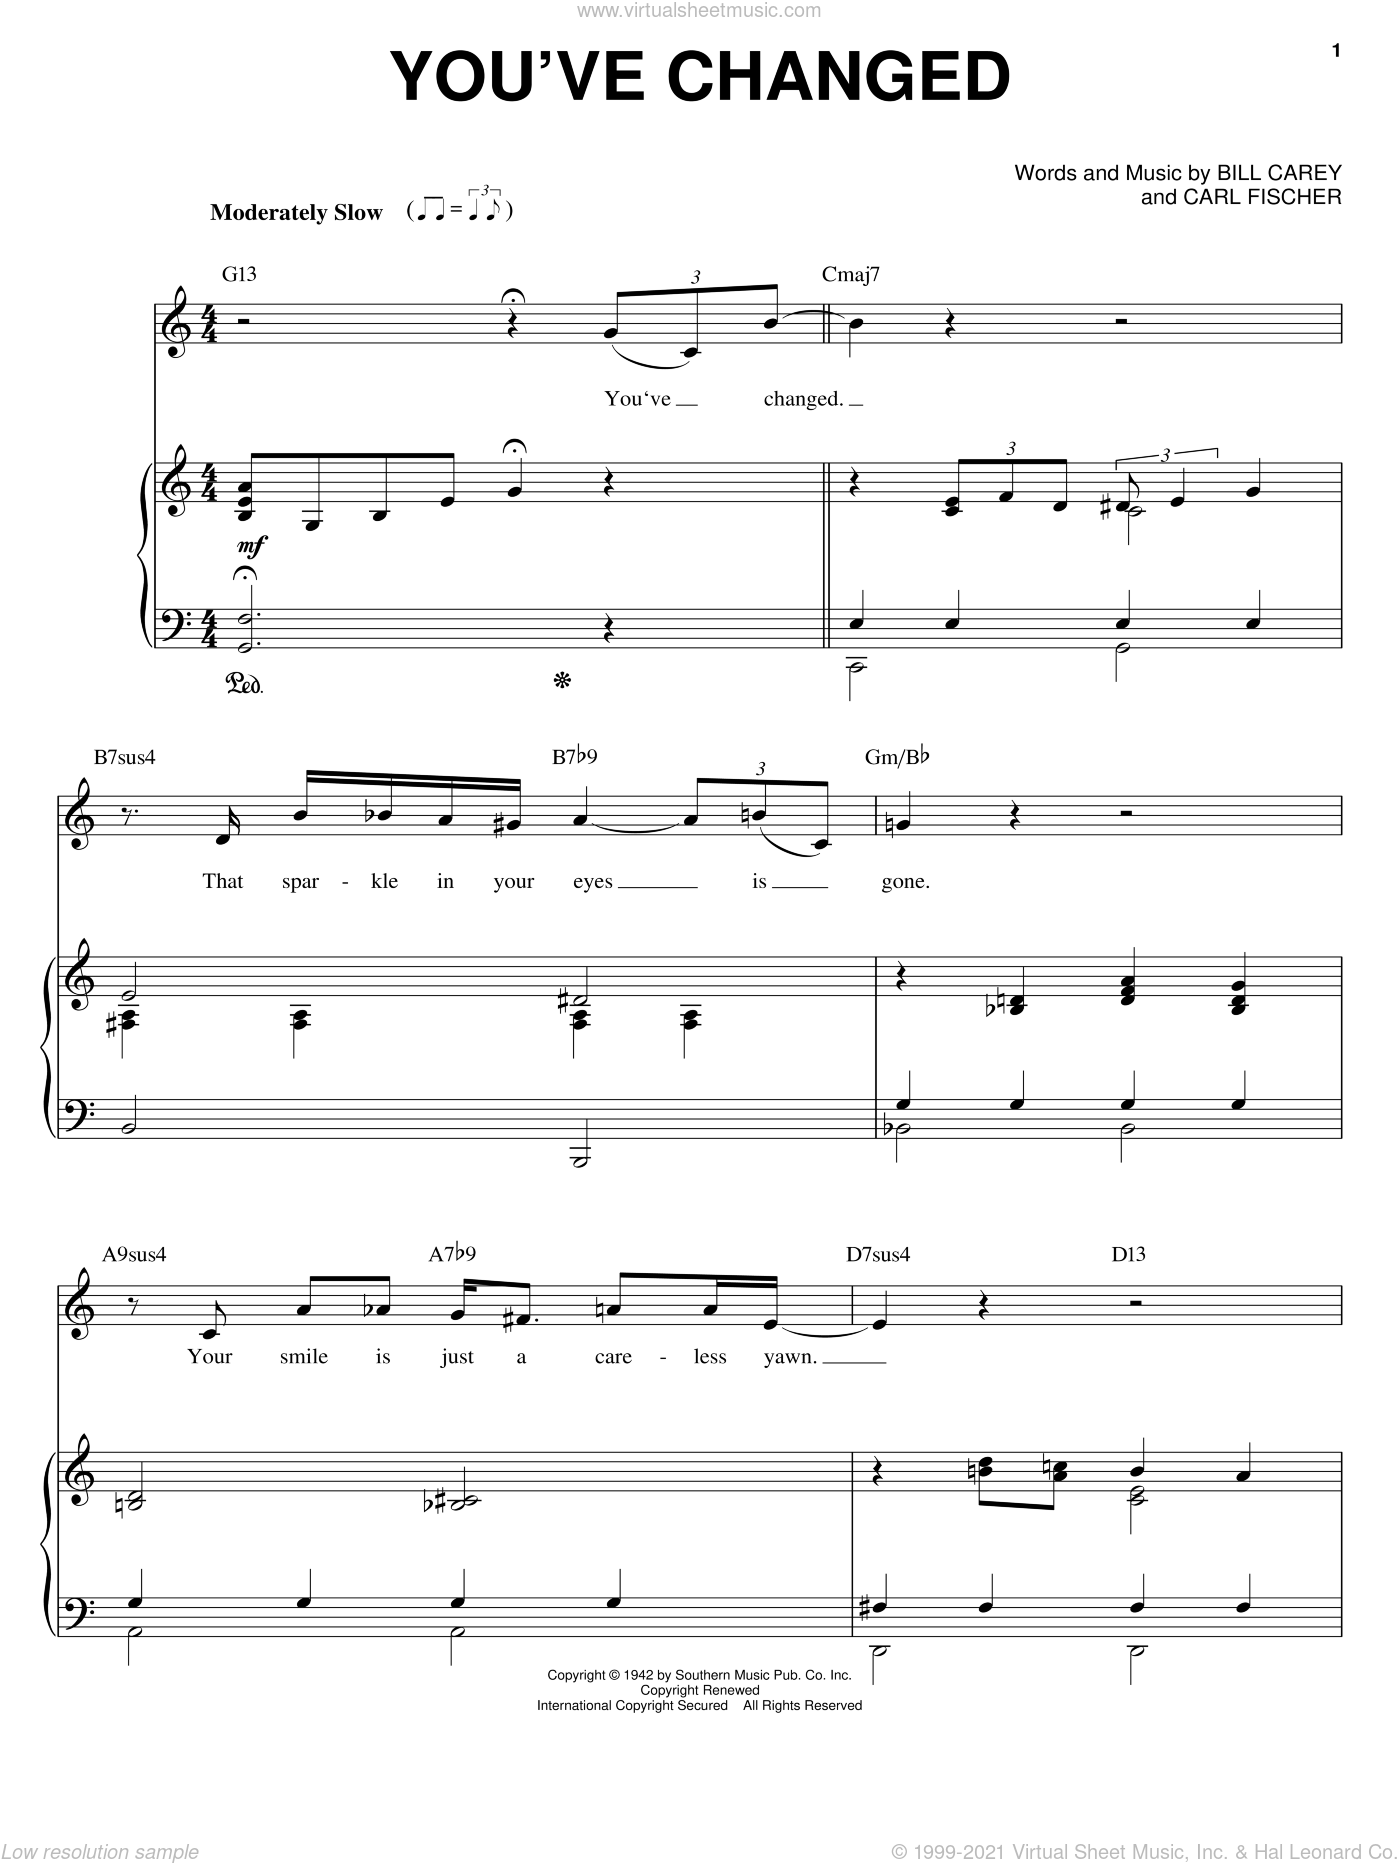 You've Changed sheet music for voice and piano by Connie Russell and Carl Fischer, intermediate